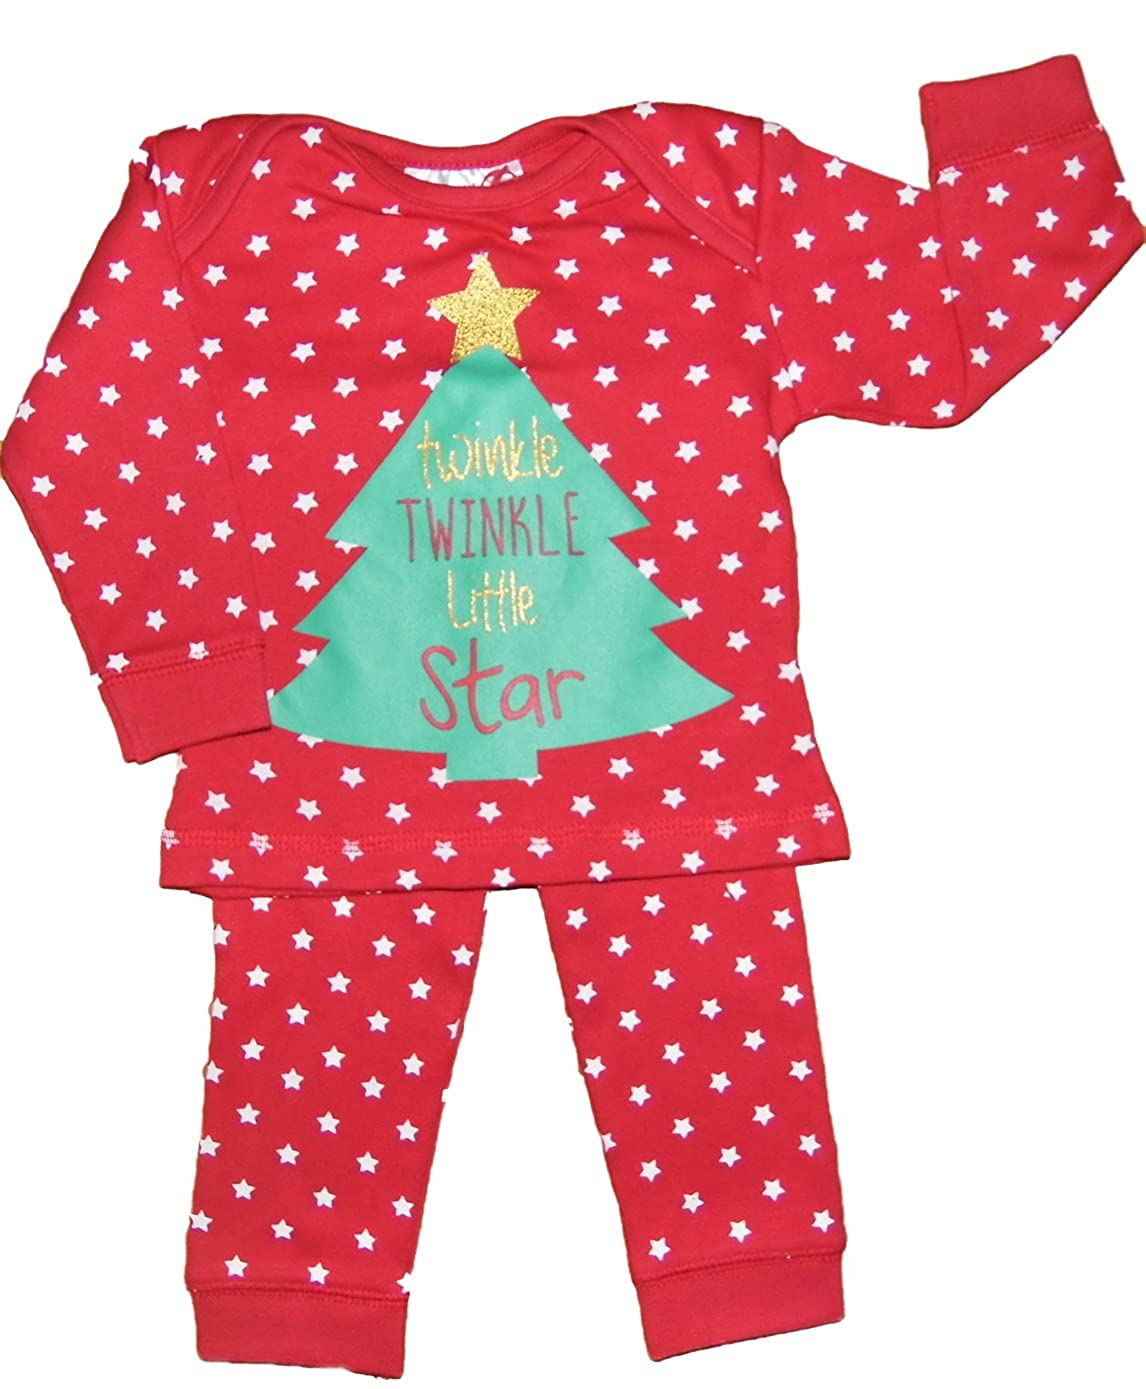 Babytown Baby Christmas Novelty Long Pyjama Set